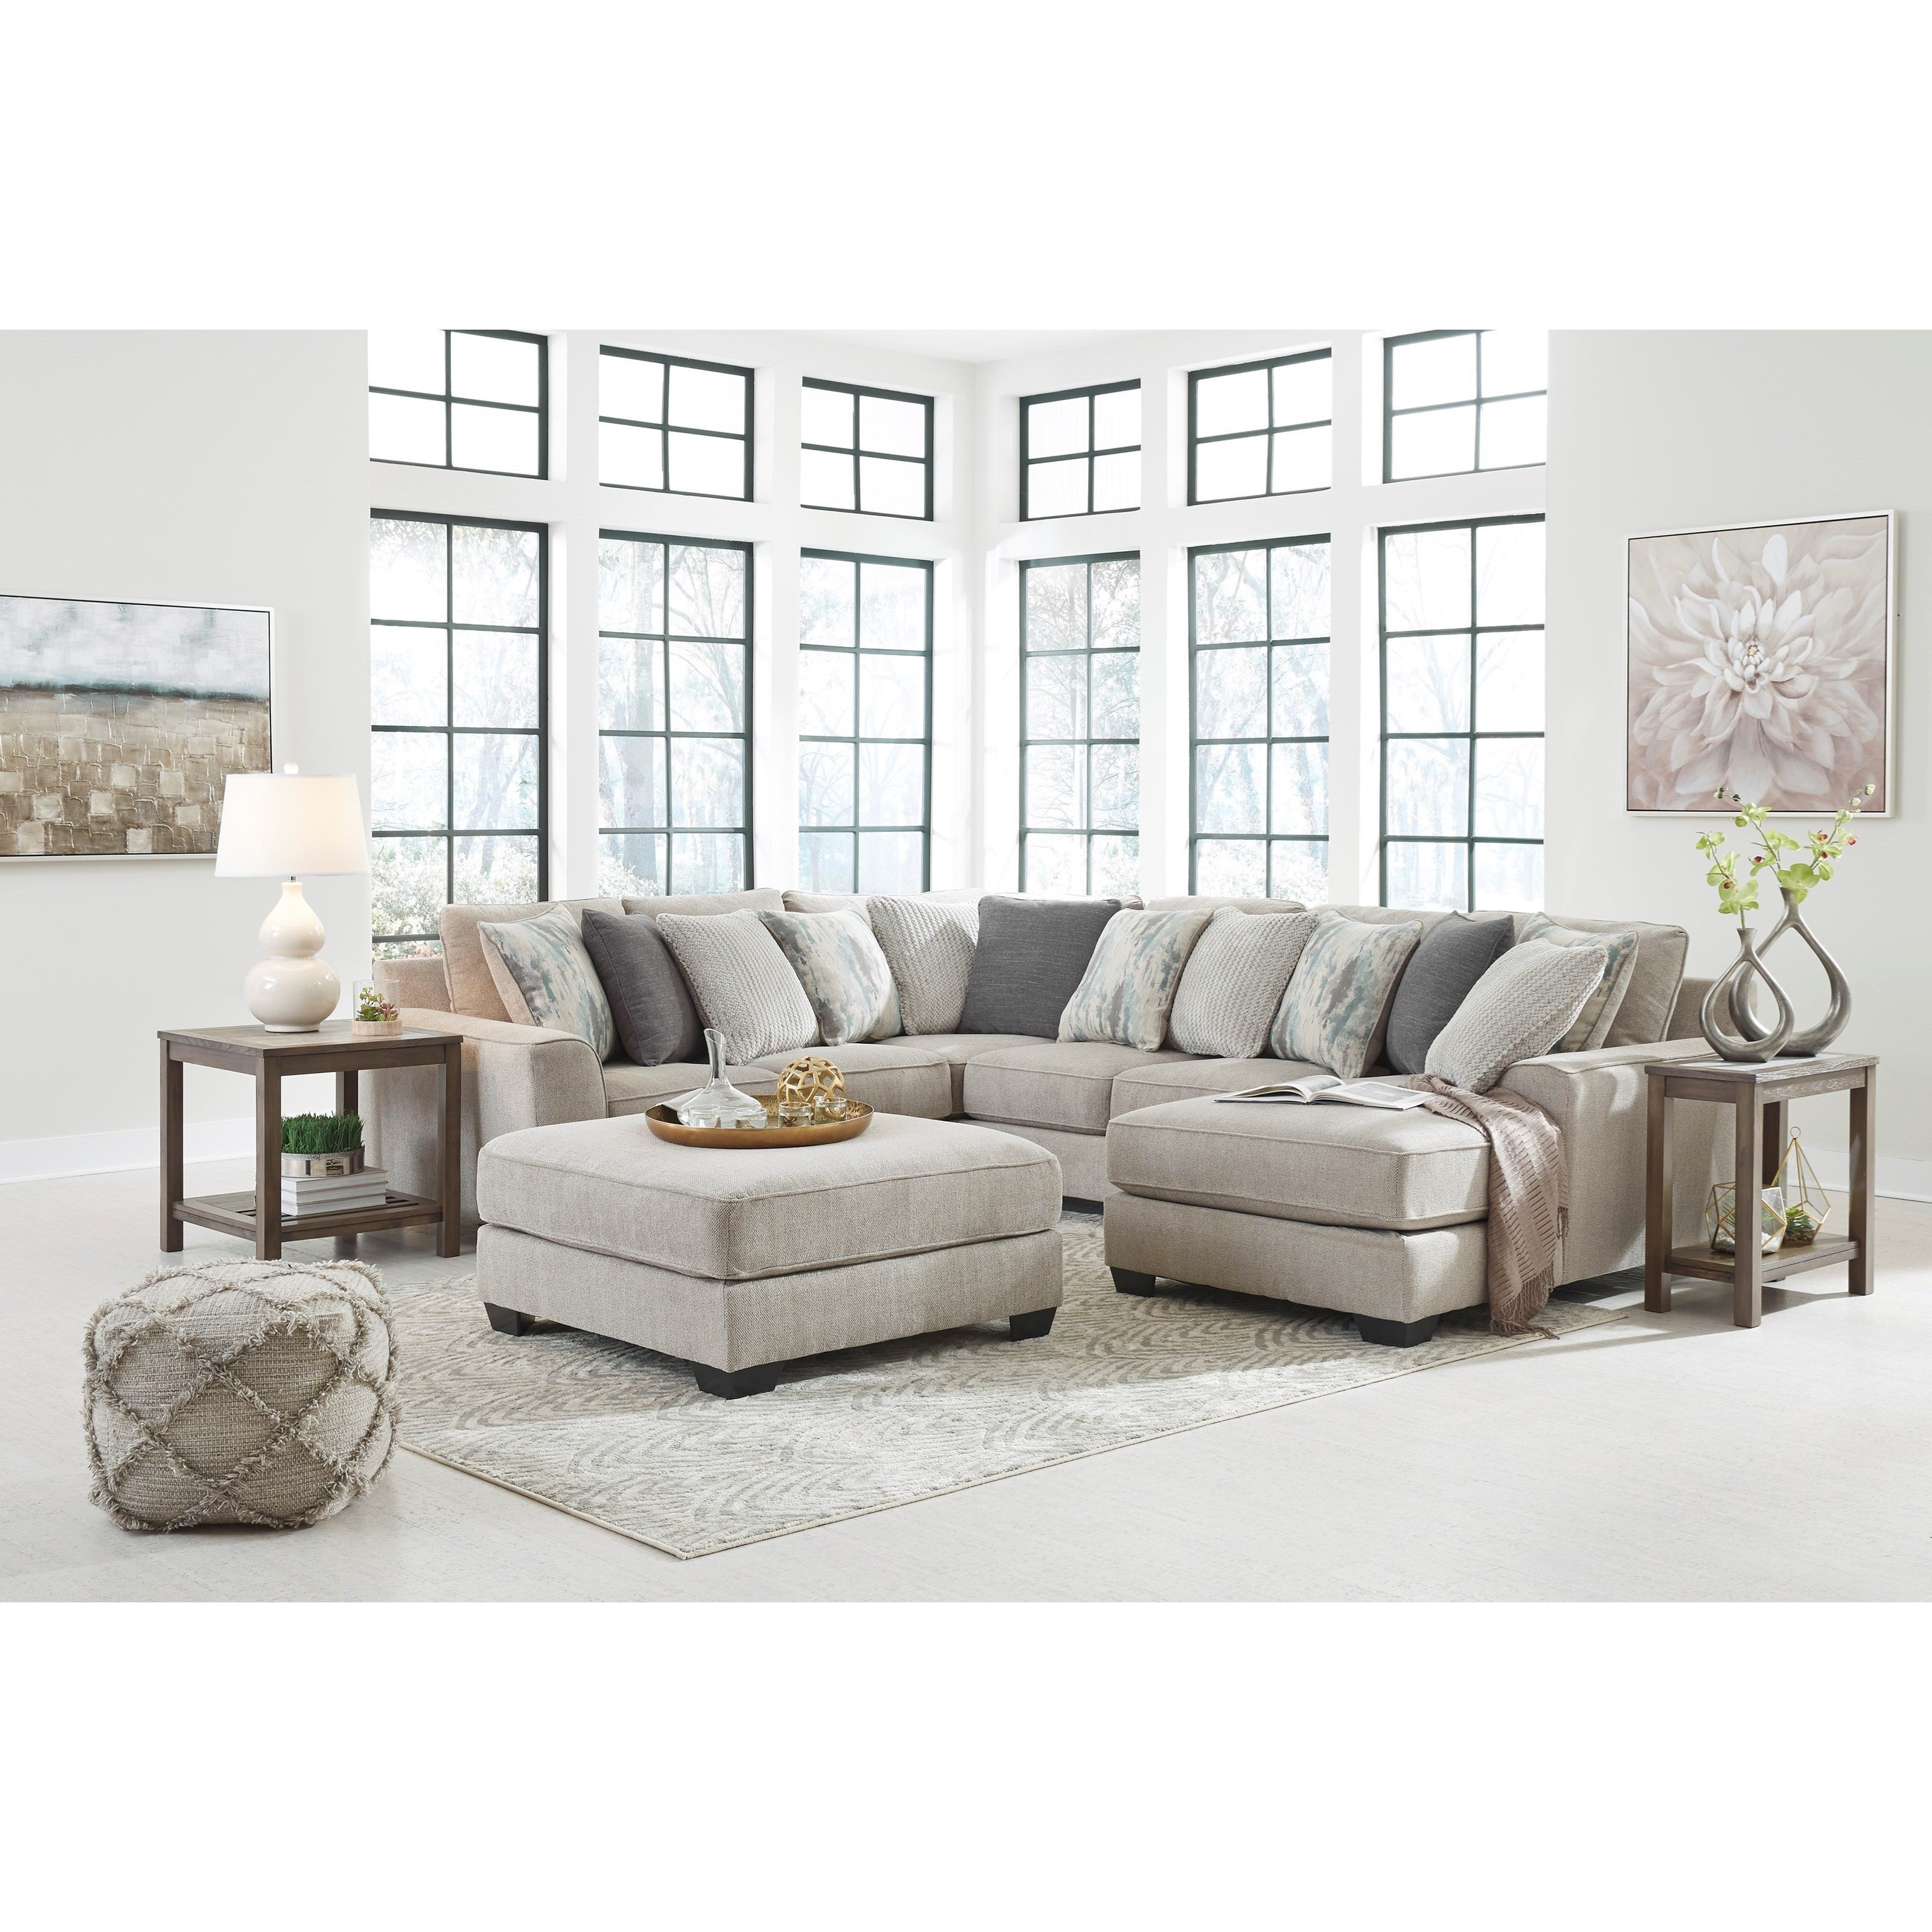 Ardsley Stationary Living Room Group by Benchcraft at Furniture Fair - North Carolina